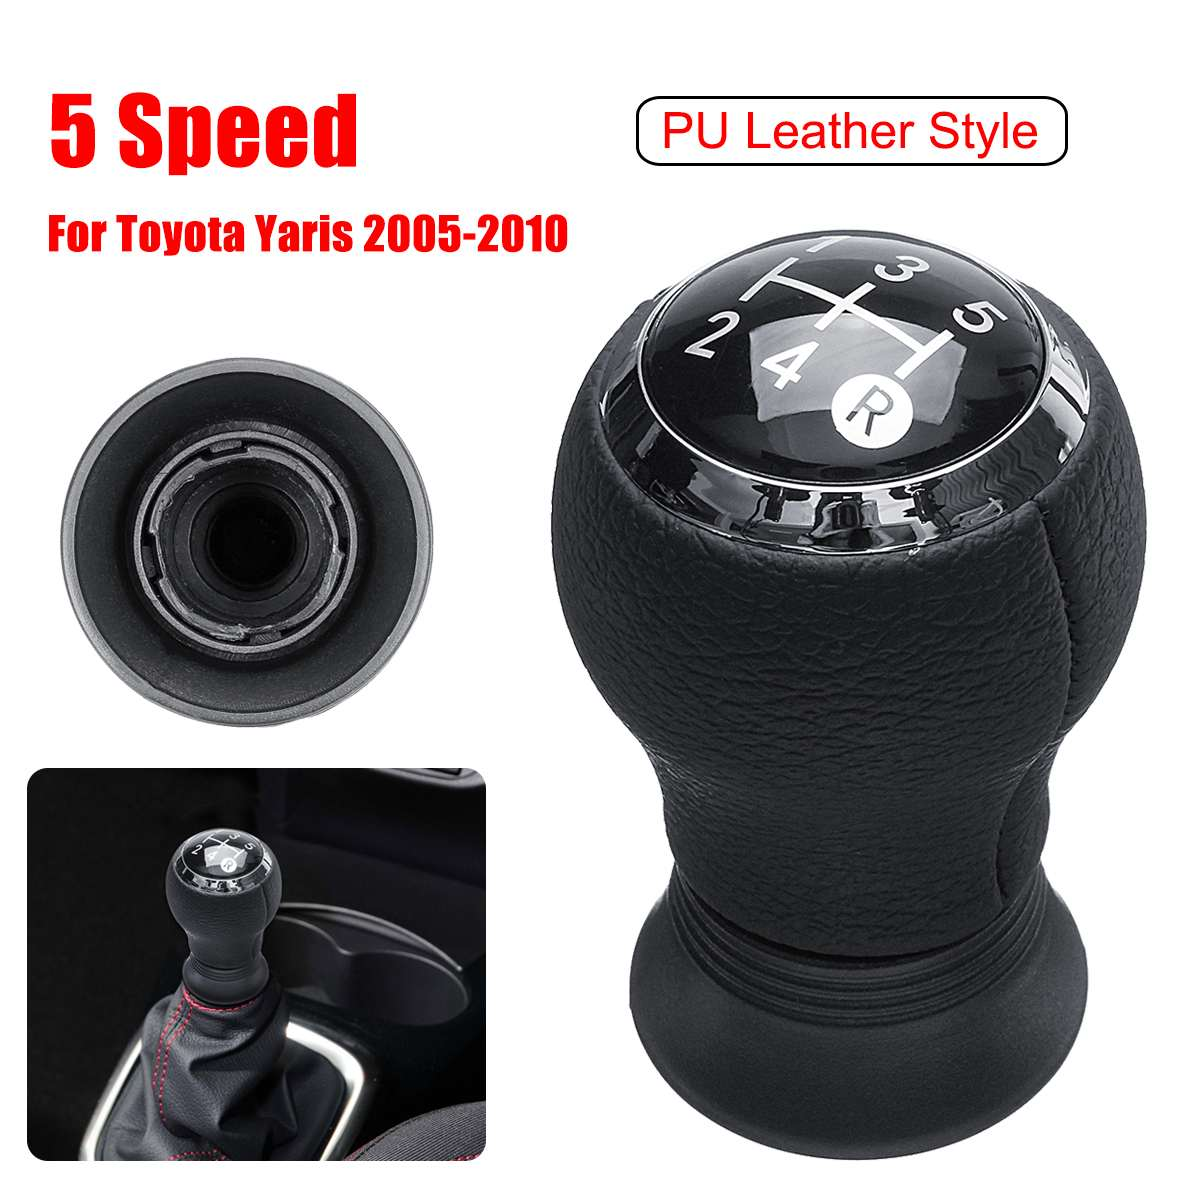 5 Speed Gear Shift Shifter Knob PU Leather For Toyota Yaris Manual ...